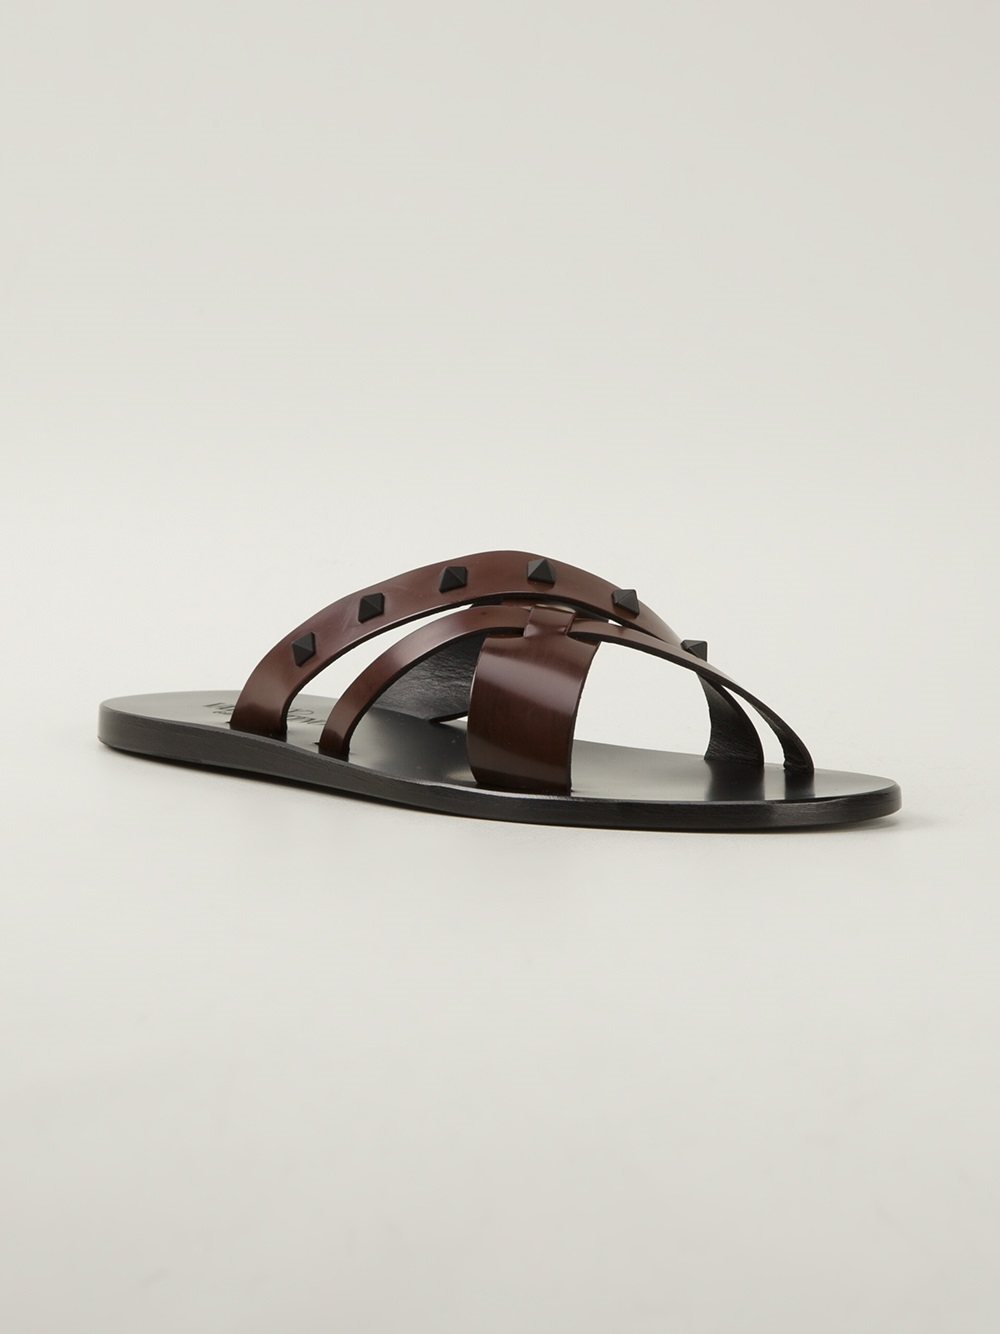 Valentino Studded Flip Flops In Brown For Men - Lyst-8324